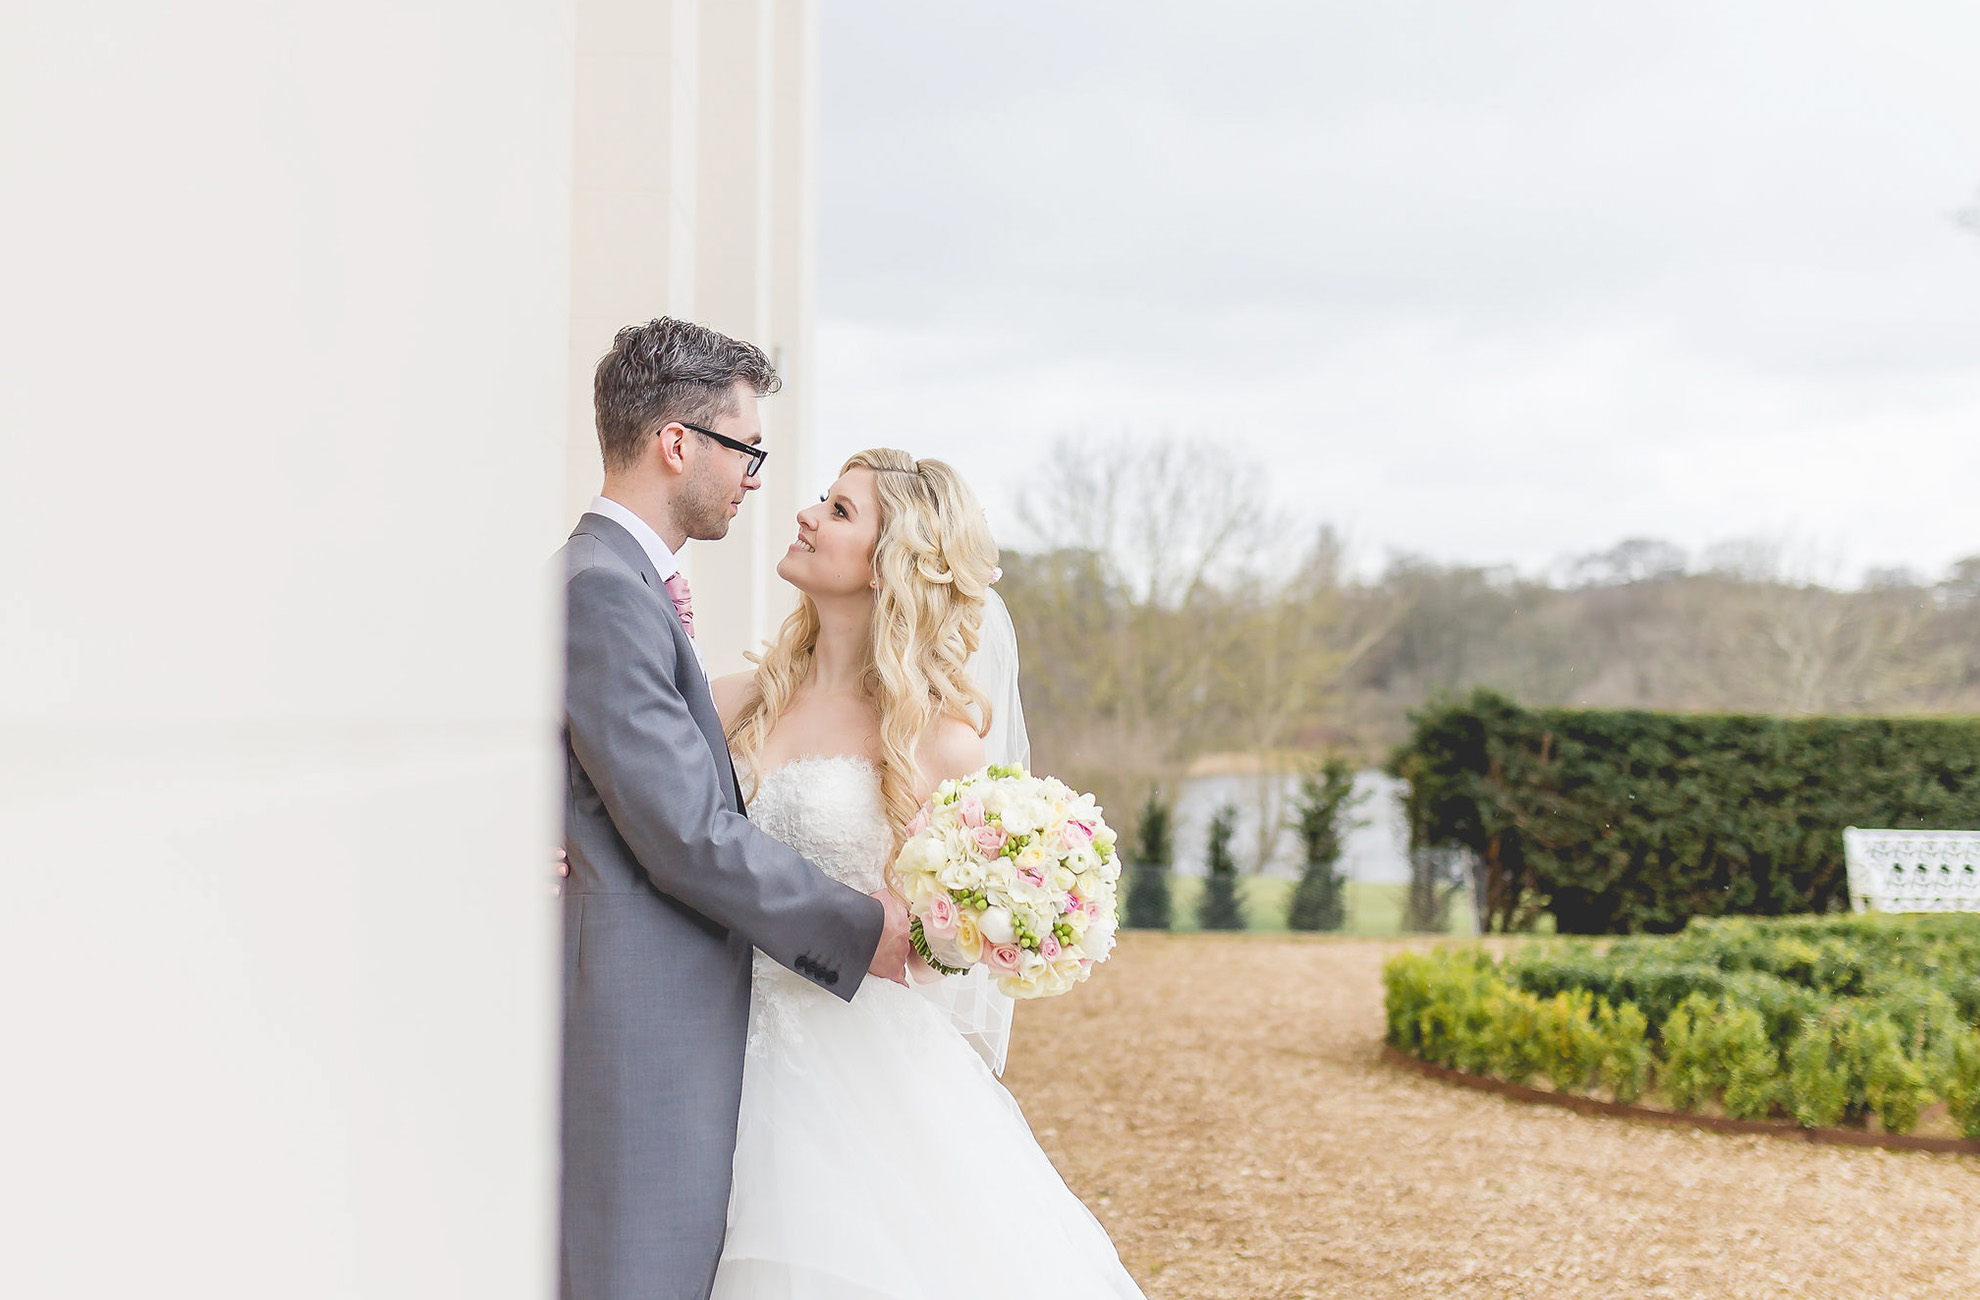 Newlyweds head to the North Wing at Combermere Abbey to capture some beautiful wedding photographs